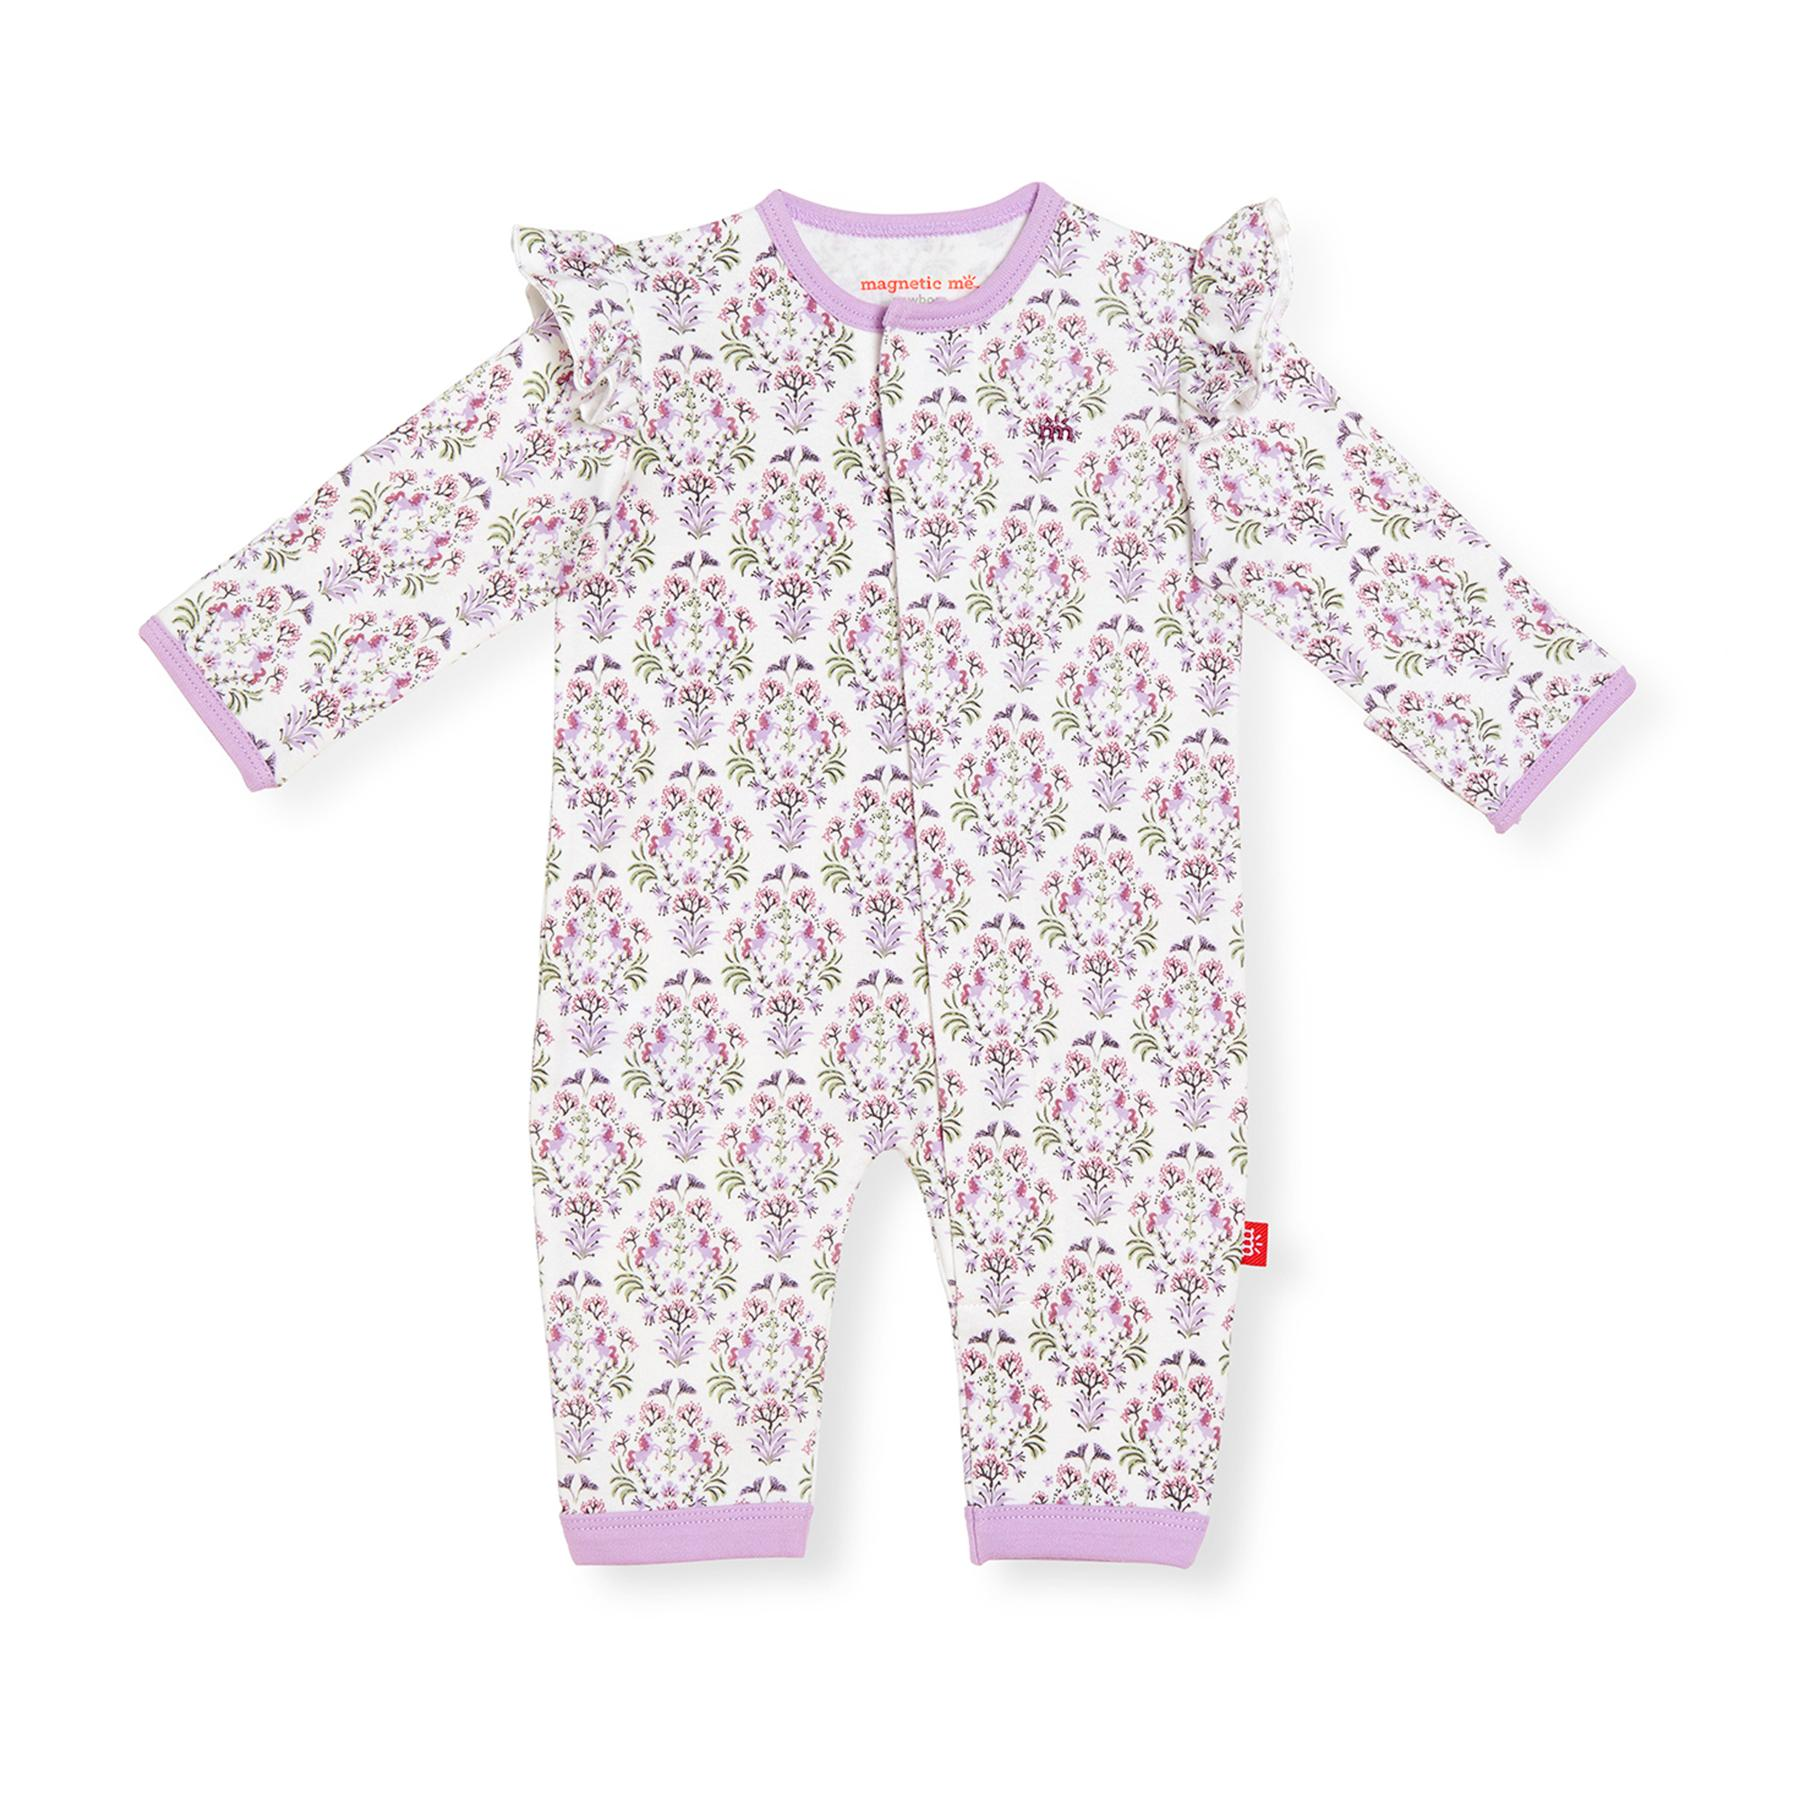 Magnetic Me organic cotton coverall- unicorn dreams